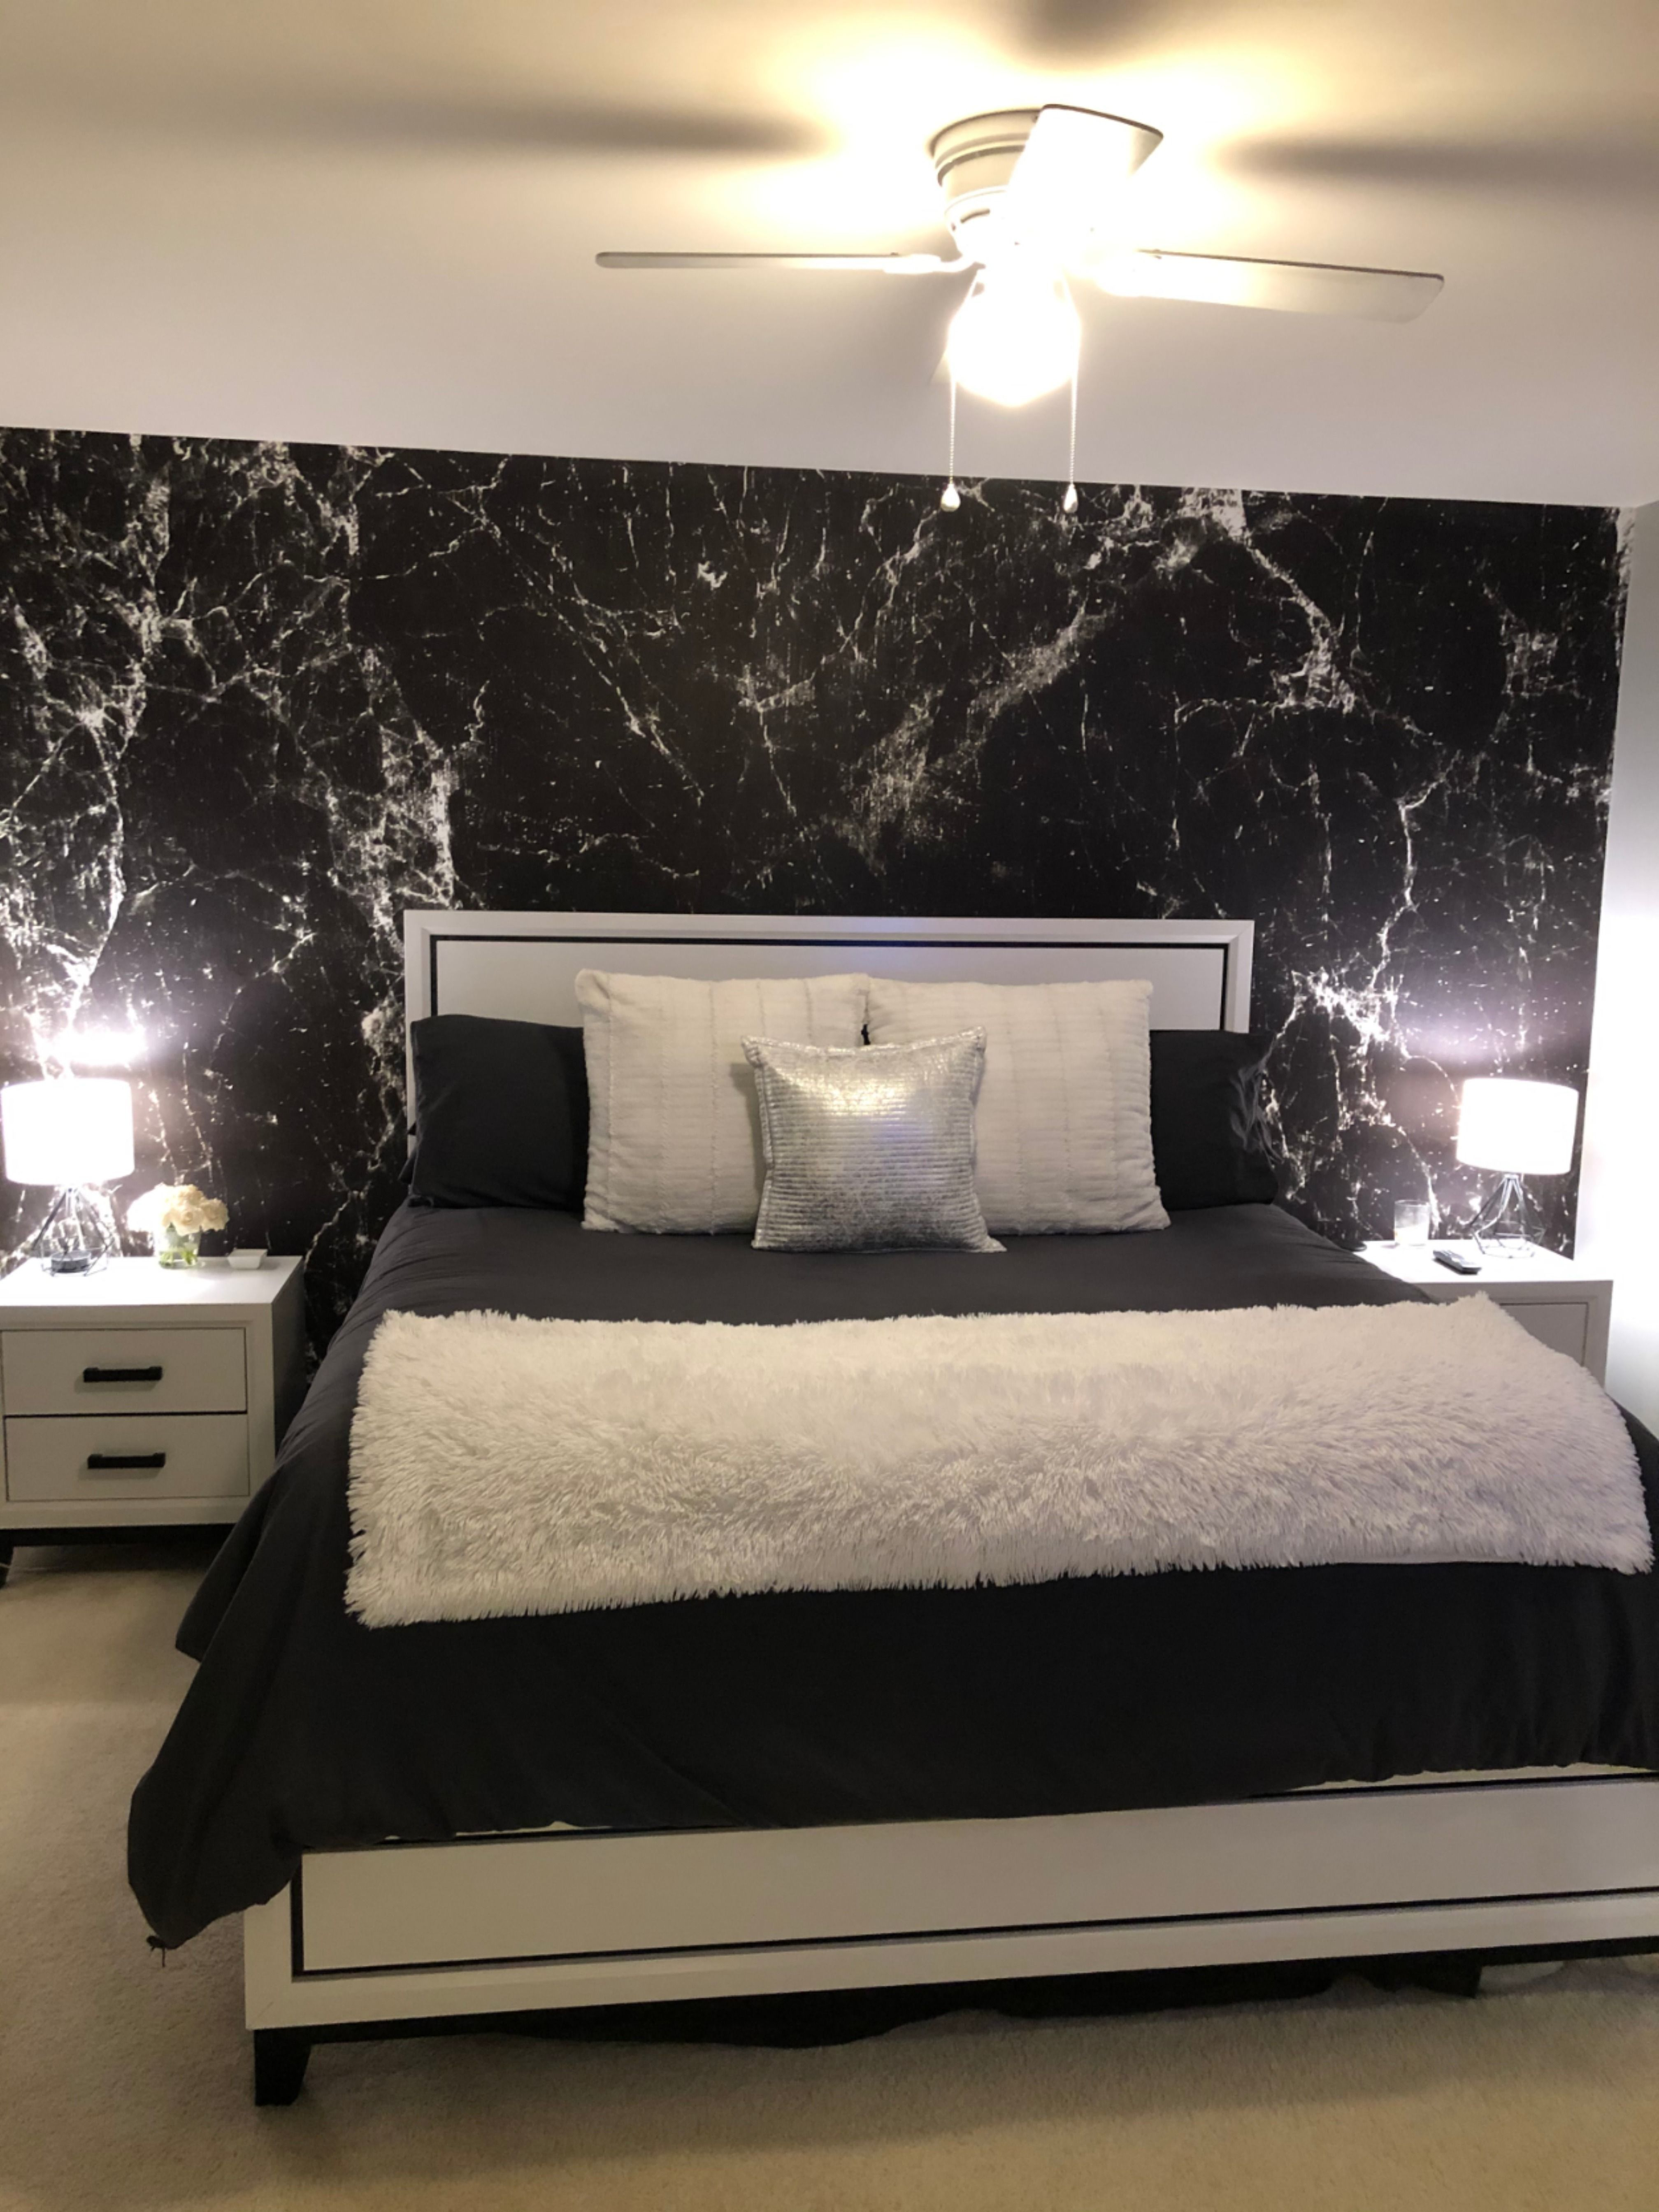 Myw Customer Lauren W Gave Her Bedroom A Dramatic Accent With This Luxurious Marble Wallp Marble Wallpaper Bedroom Bedroom Wallpaper Murals Wall Decor Bed Black Wallpaper Bedroom Marble Wallpaper Bedroom